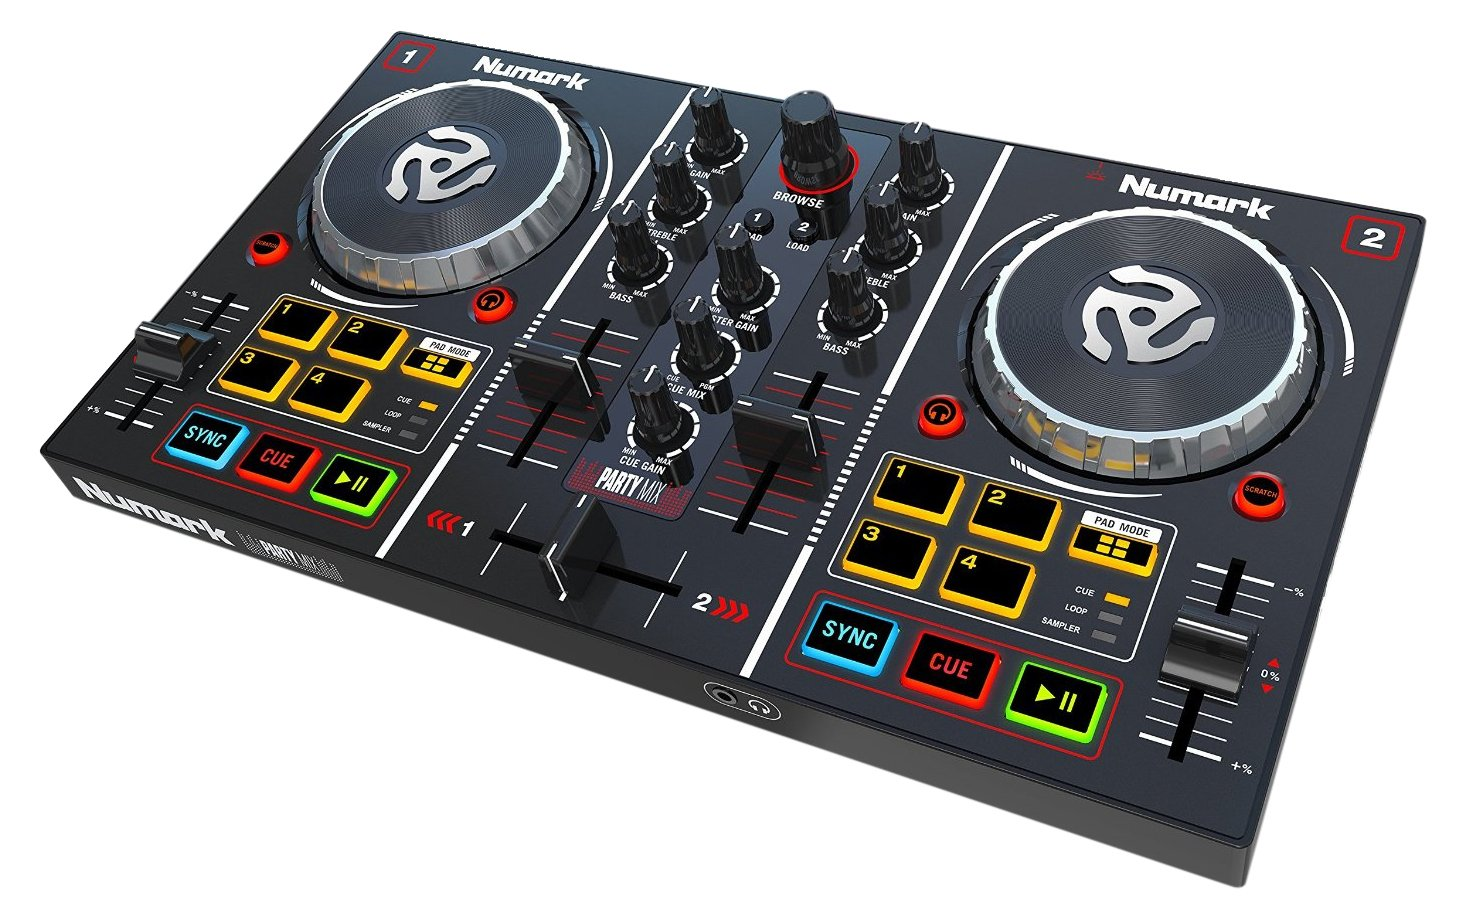 Amazon.com: Numark Party Mix | Starter DJ Controller with Built-In ...